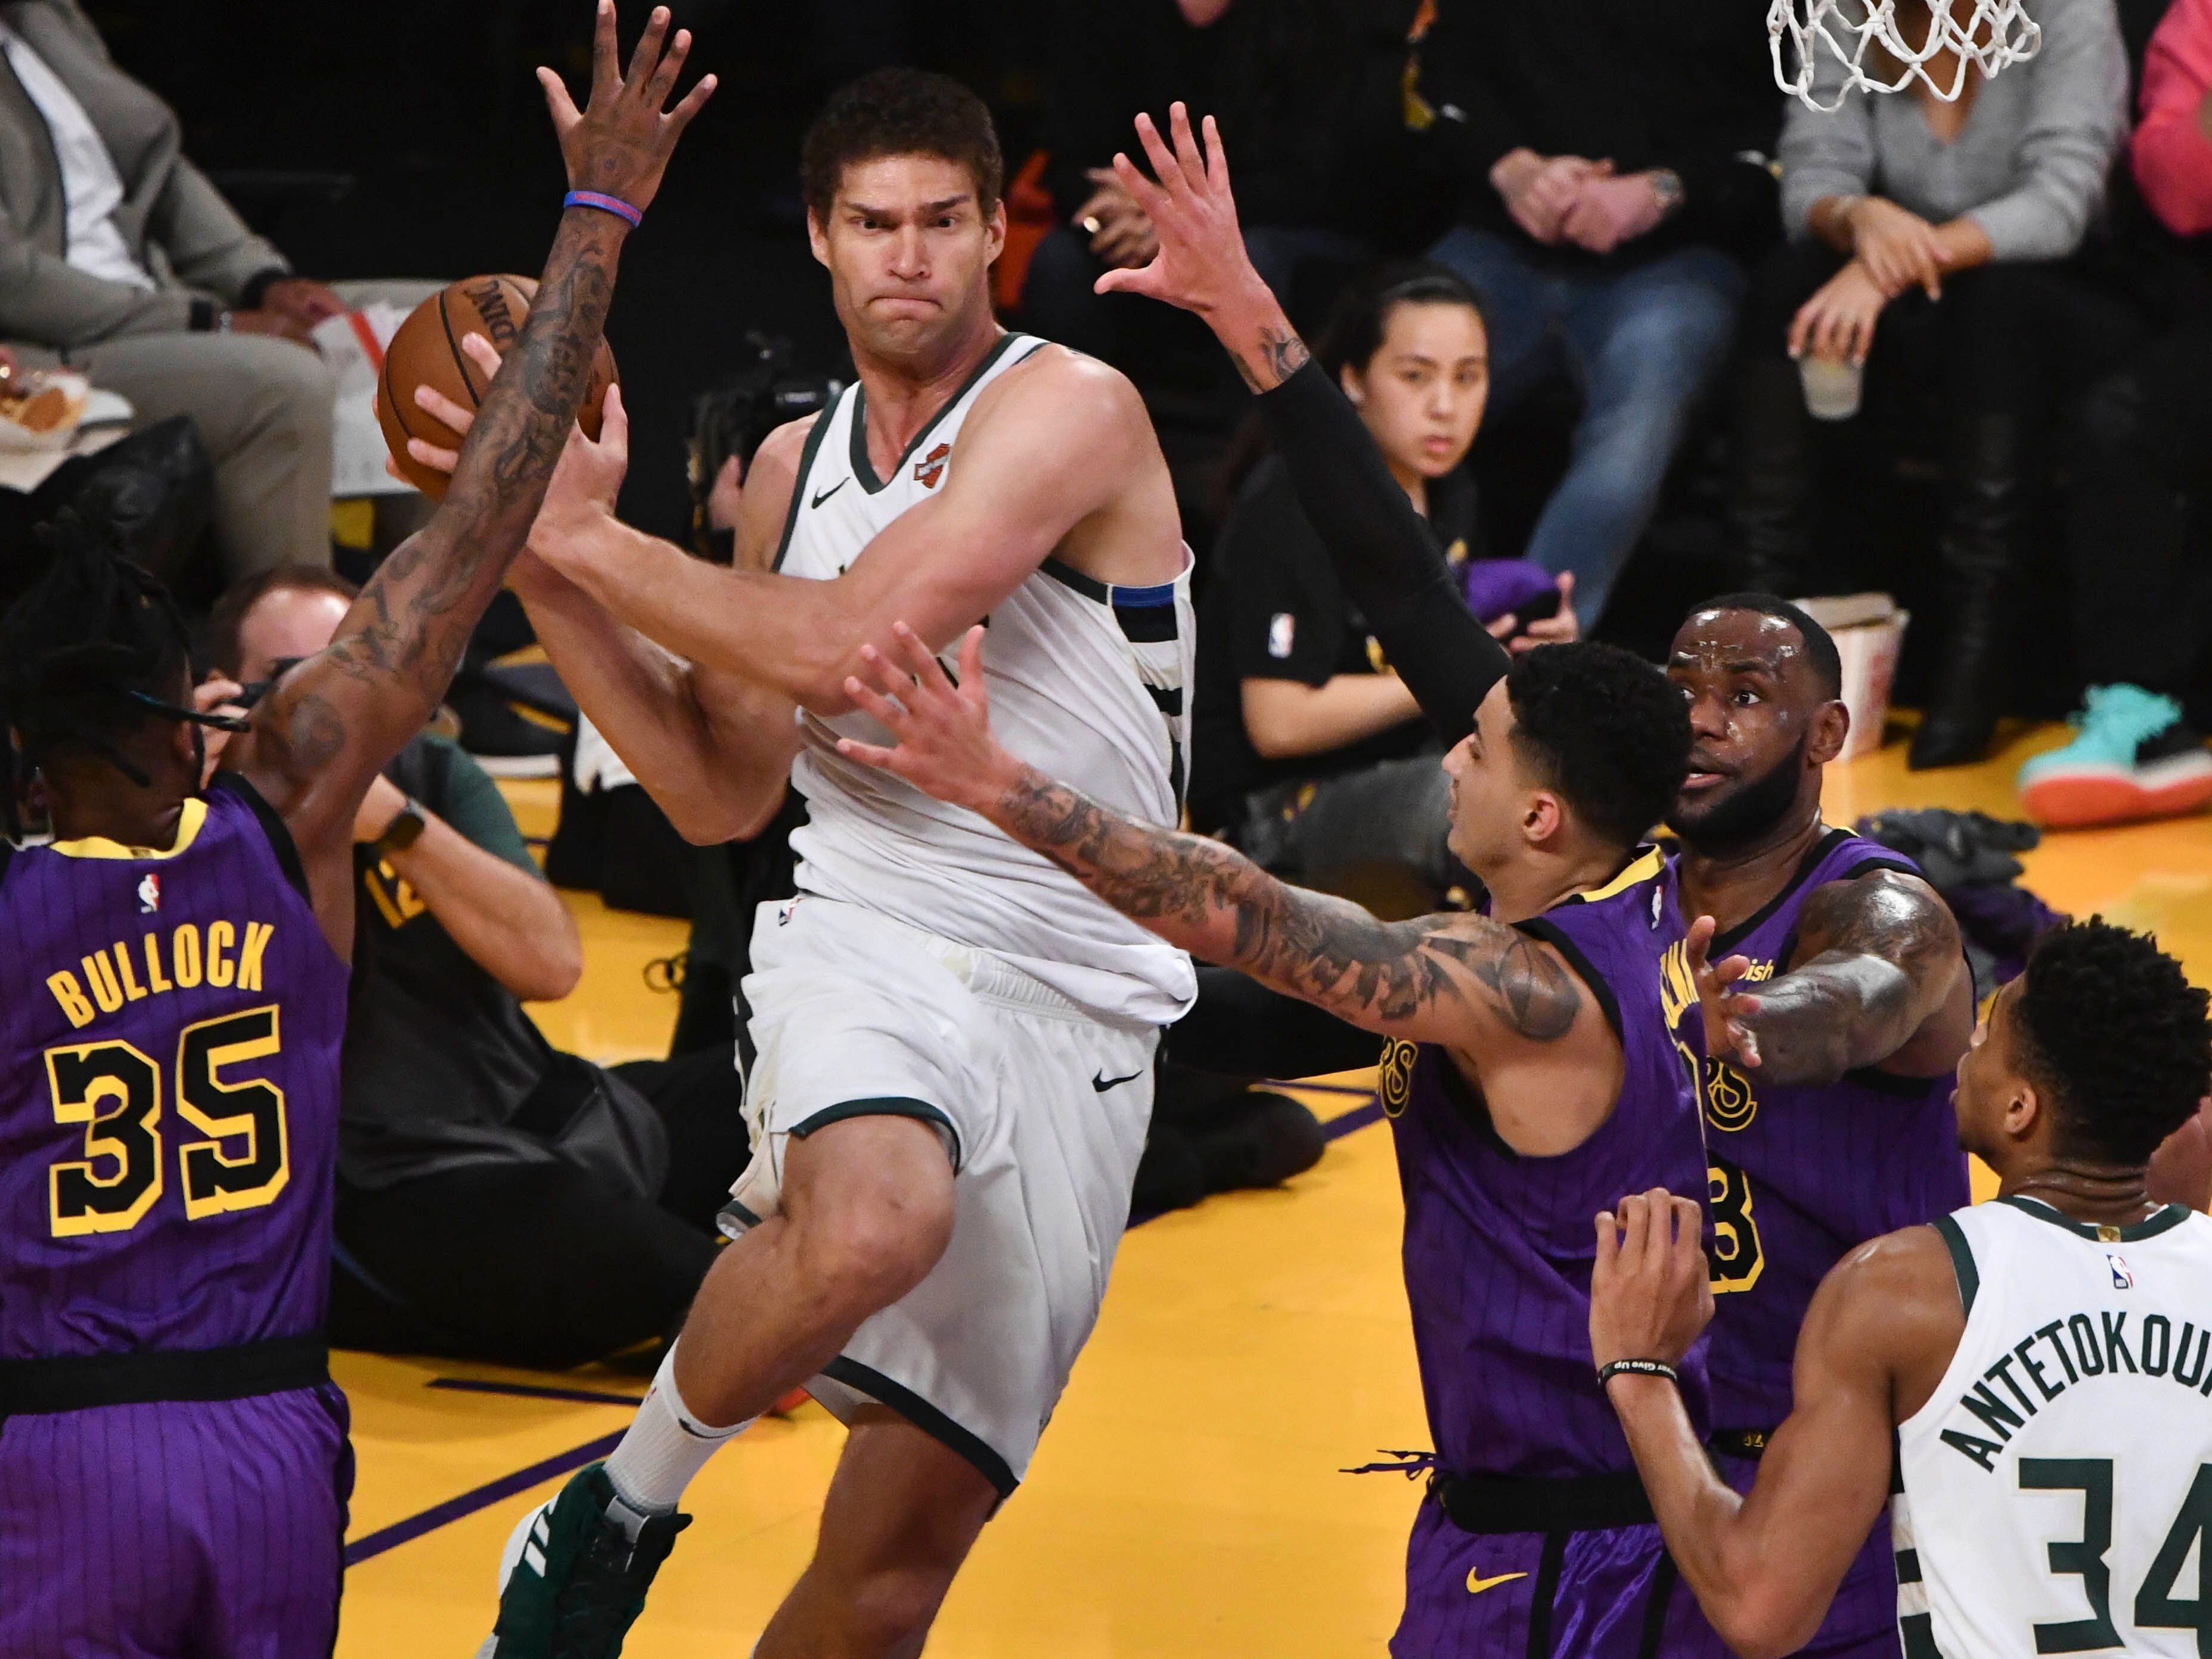 Bucks center Brook Lopez goes airborne as he looks for a teammate to pass to after getting pinned along the baseline by a trio of Lakers during the first quarter.